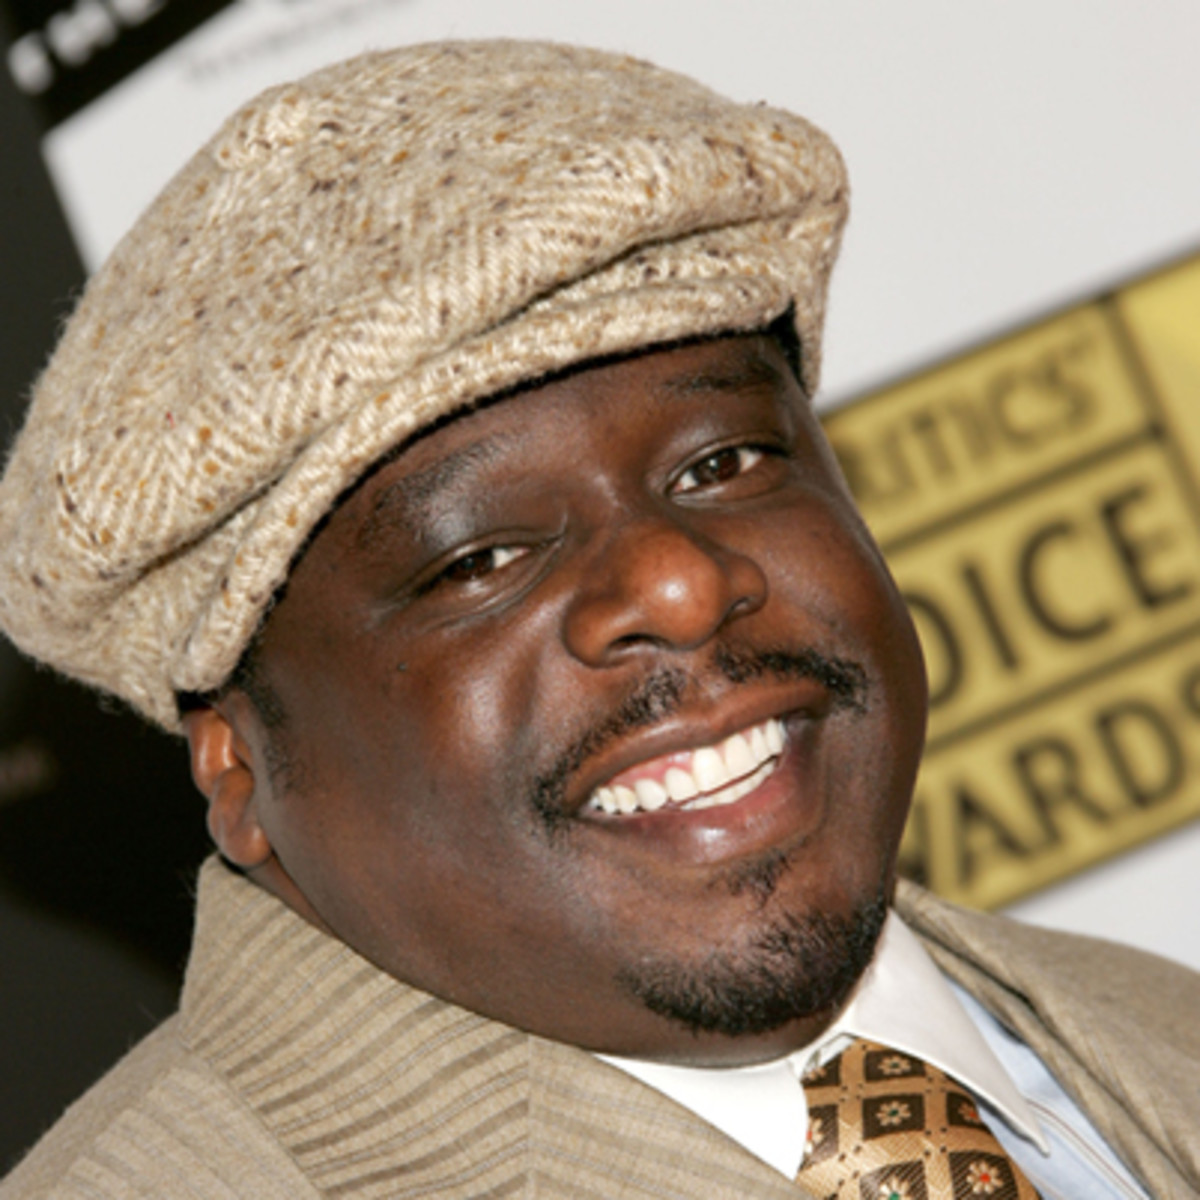 Cedric the entertainer date of birth in Perth